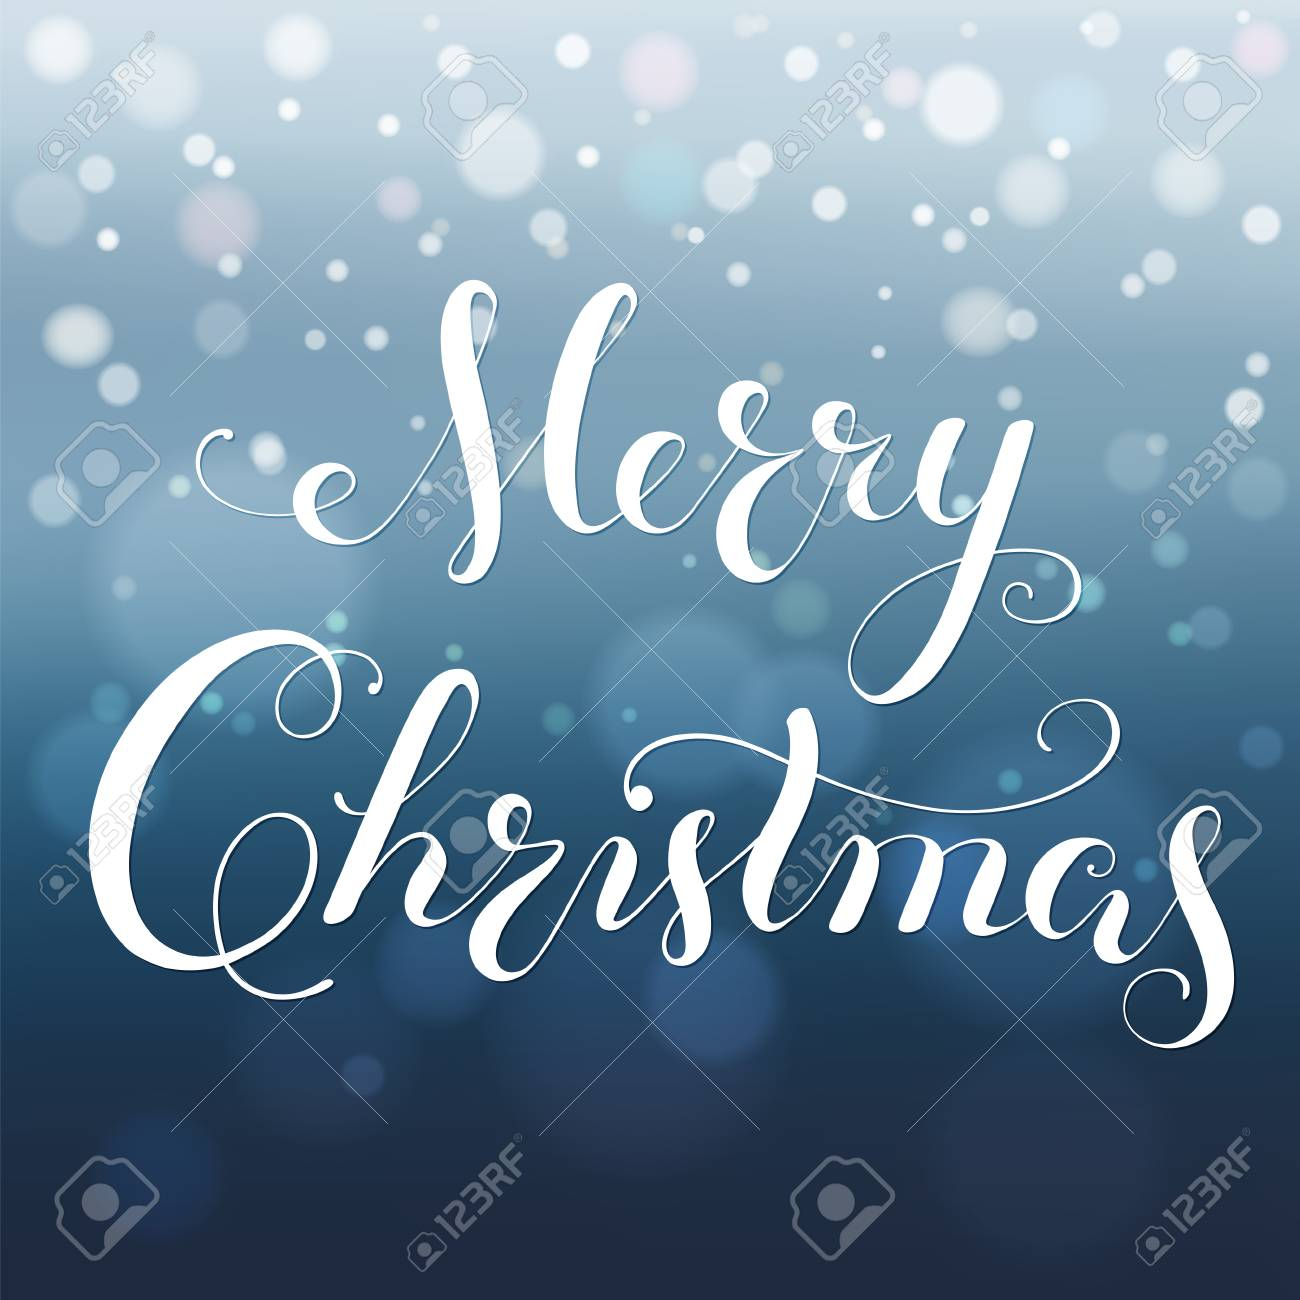 Merry Christmas calligraphy lettering. greeting card with bokeh background, blurred nowflakes and lights. Vector. - 88846899